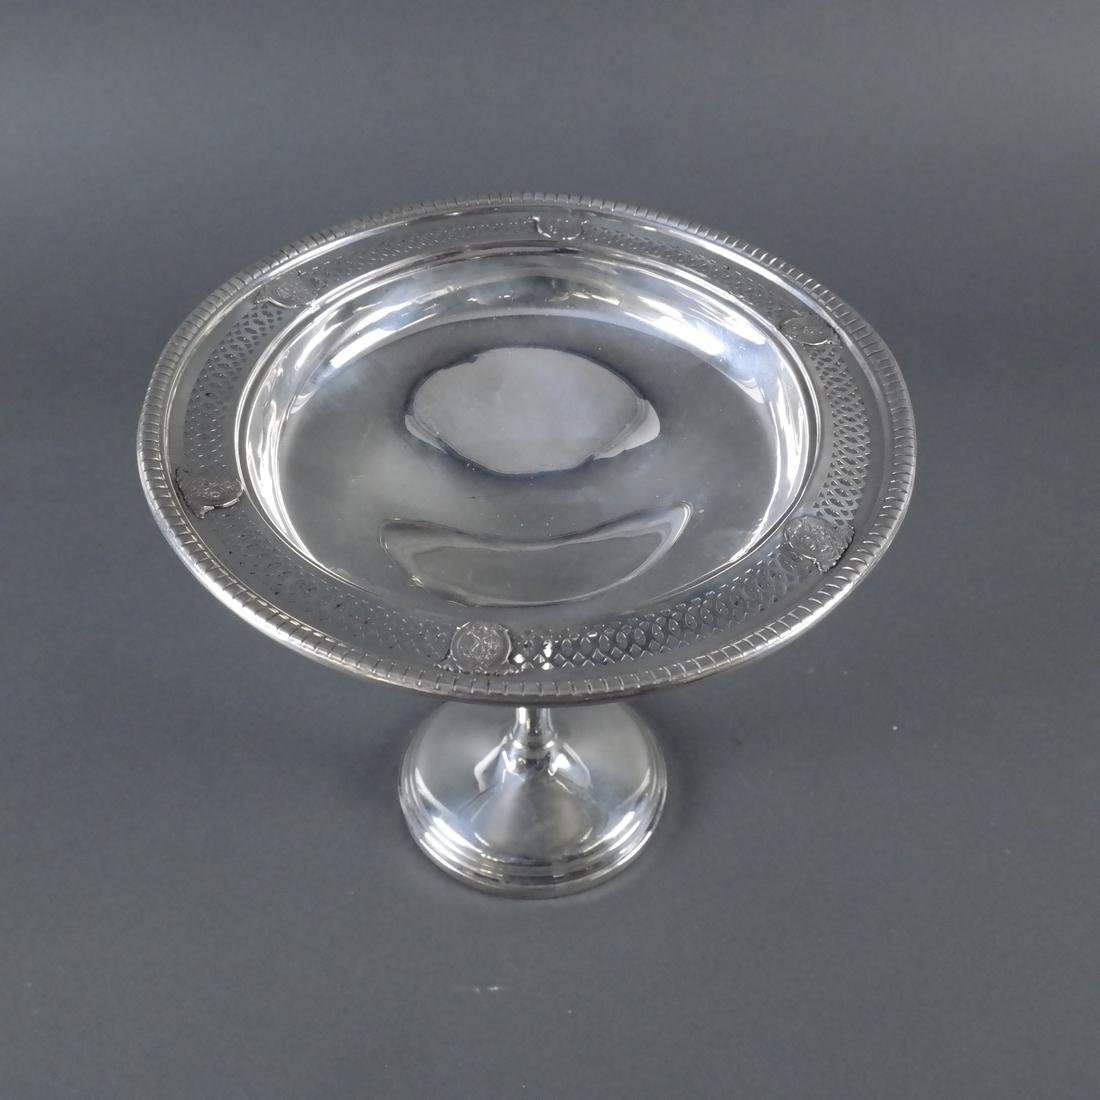 Weighted Sterling Silver Compote - 4